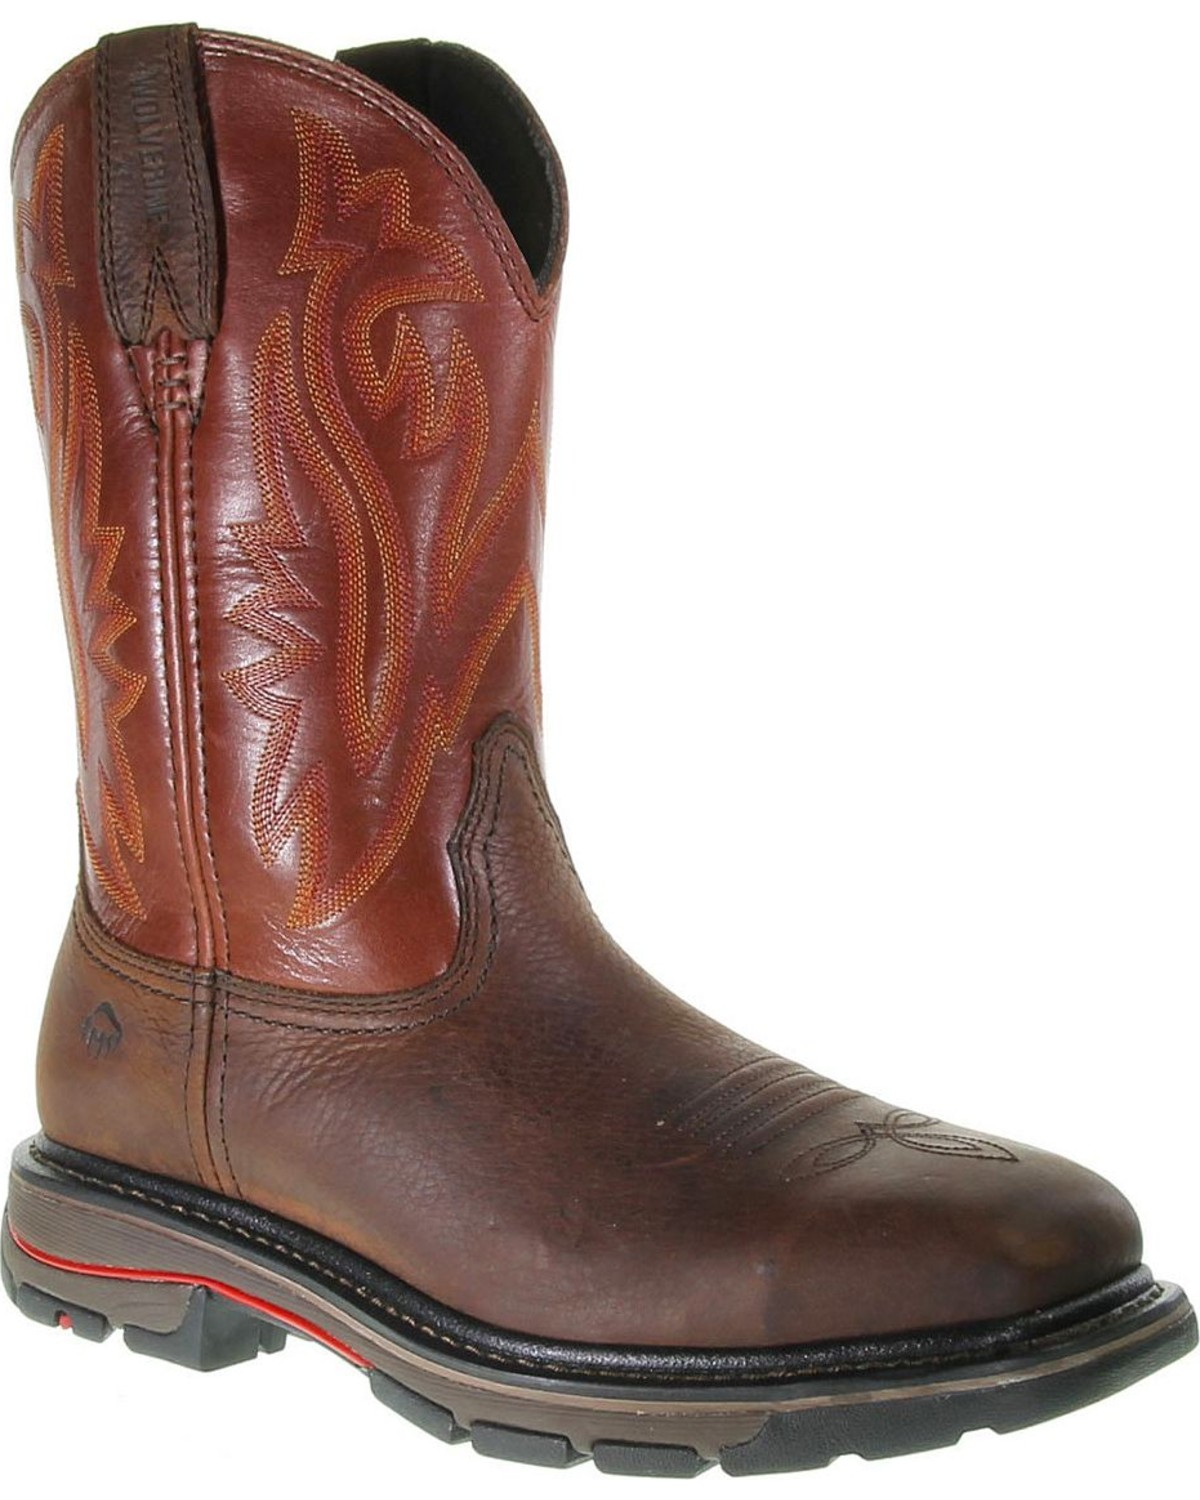 c62a81f2866 Wolverine Men's Javelina Steel Toe Work Boots